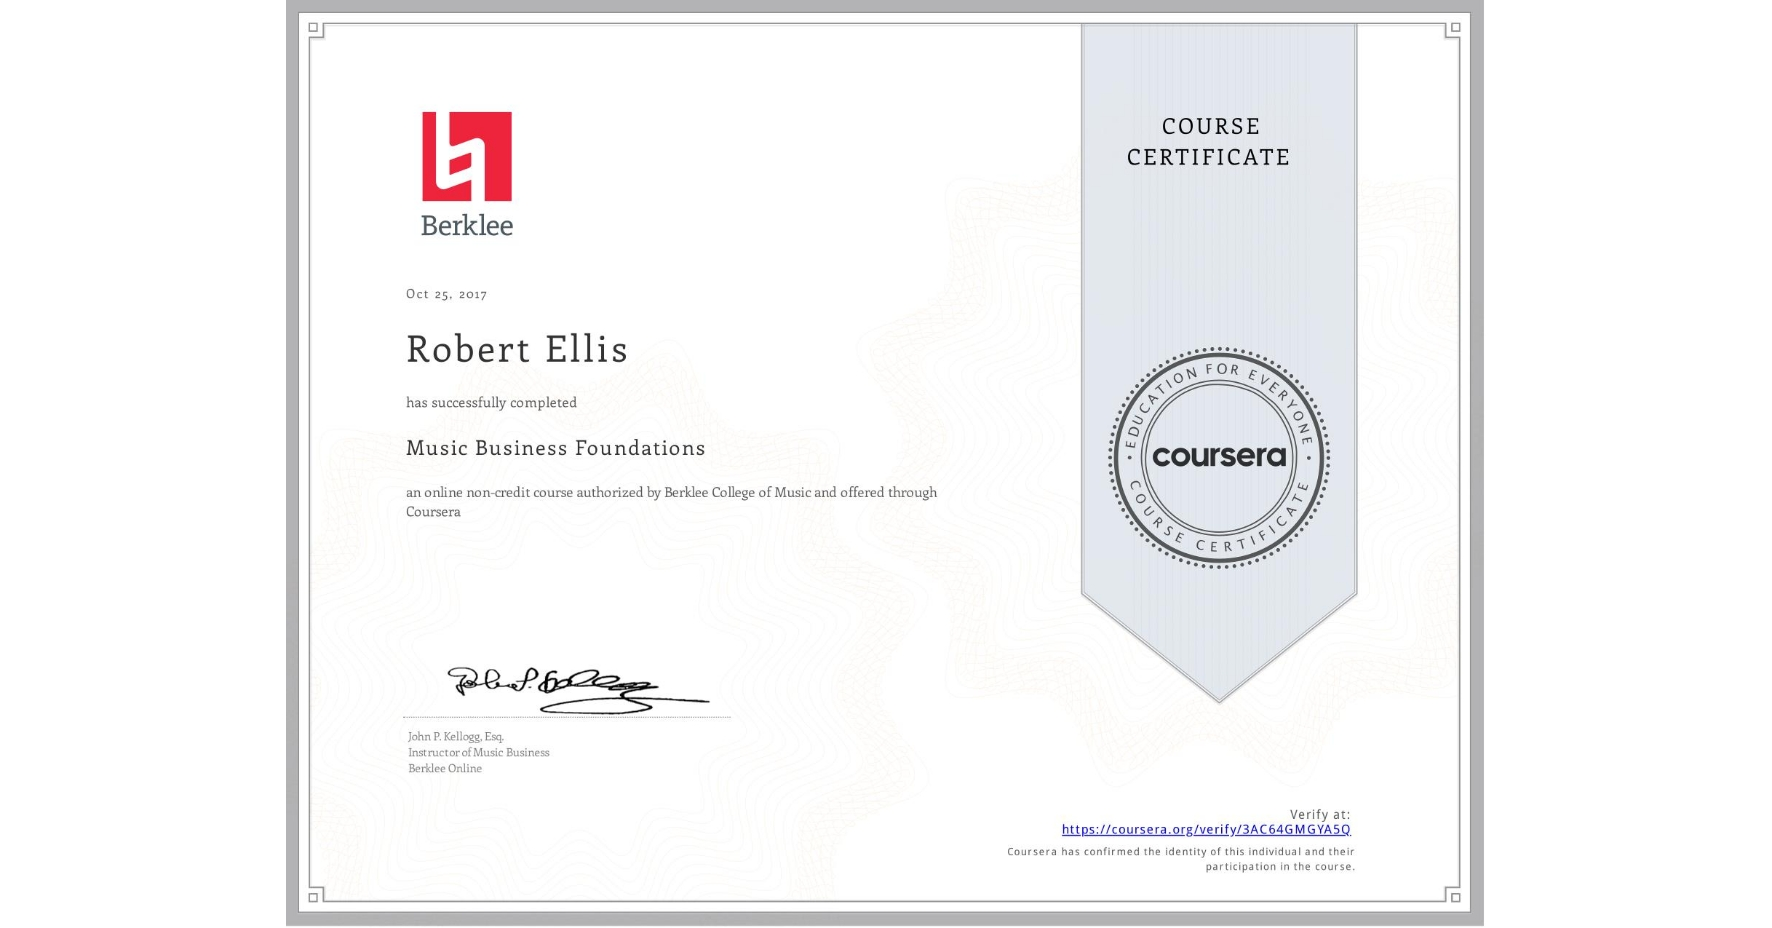 View certificate for Robert Ellis, Music Business Foundations, an online non-credit course authorized by Berklee College of Music and offered through Coursera